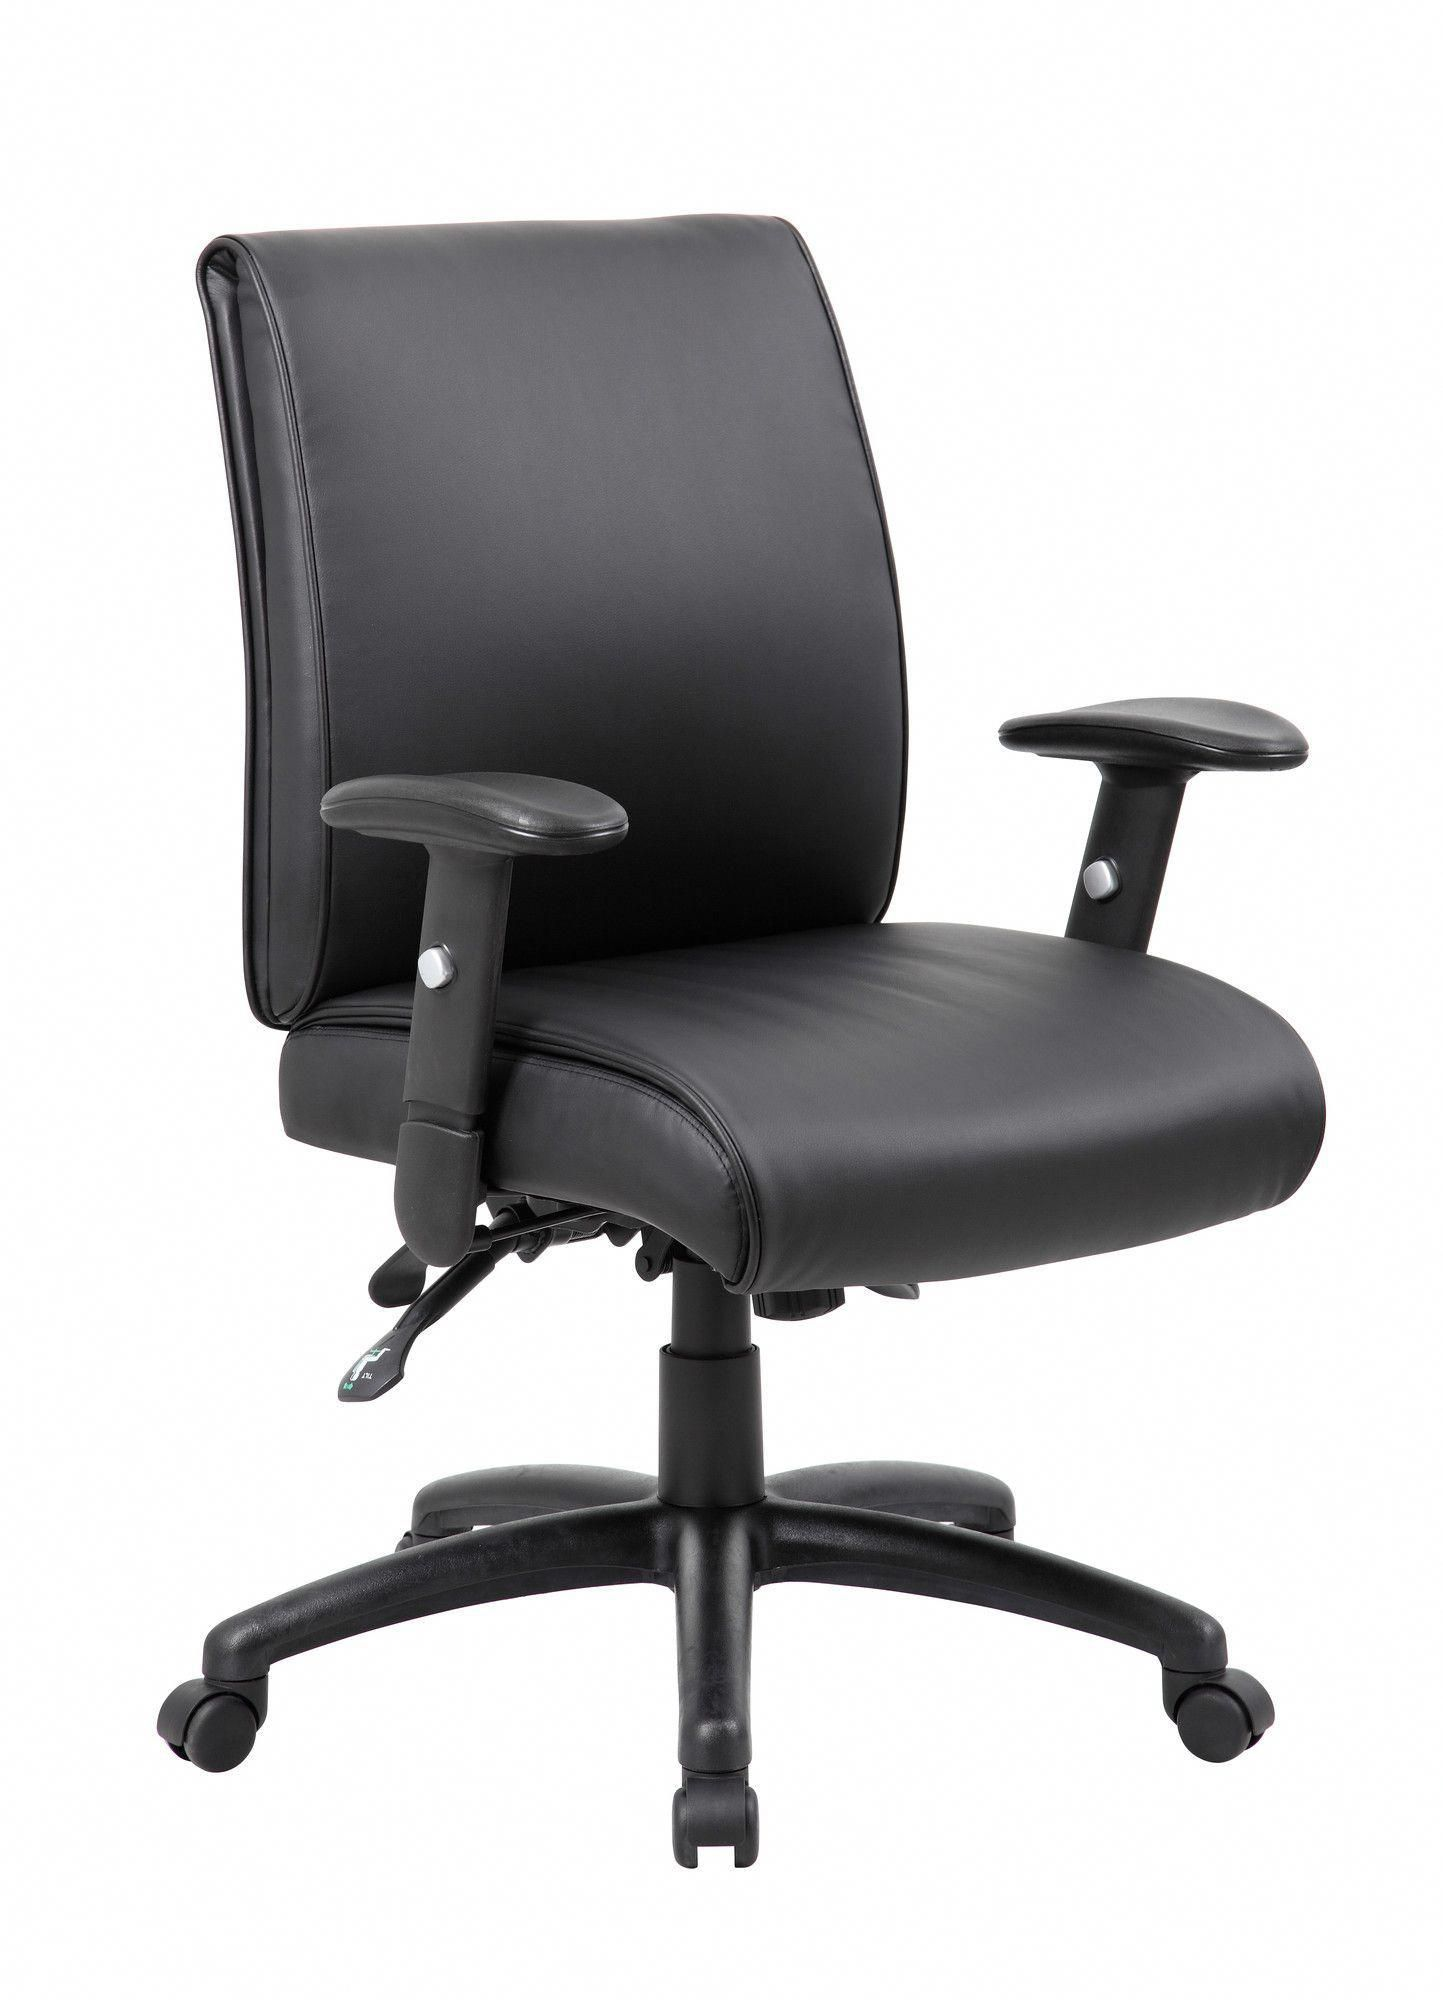 Astounding Mid Back Conference Chair With Arms Deskchairtarget Desk Interior Design Ideas Clesiryabchikinfo